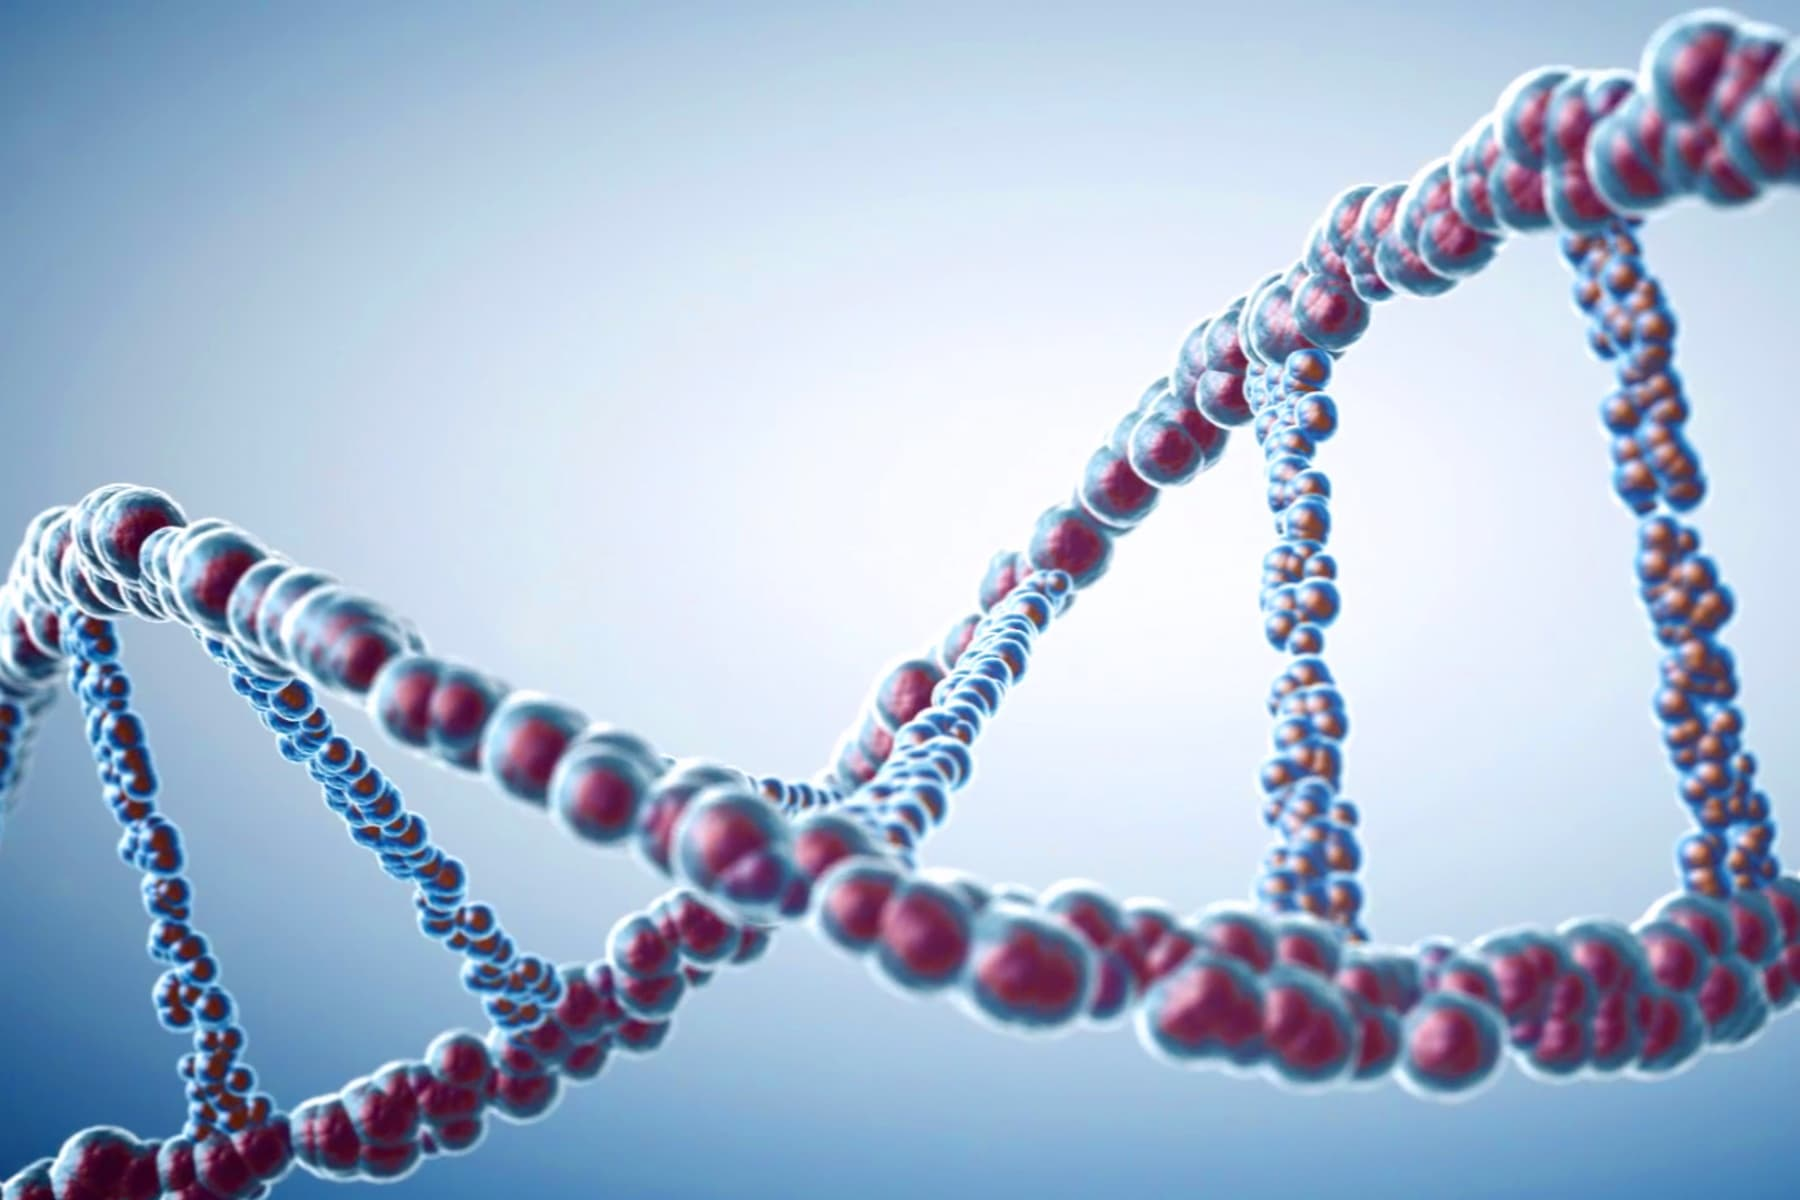 photo illustration of dna